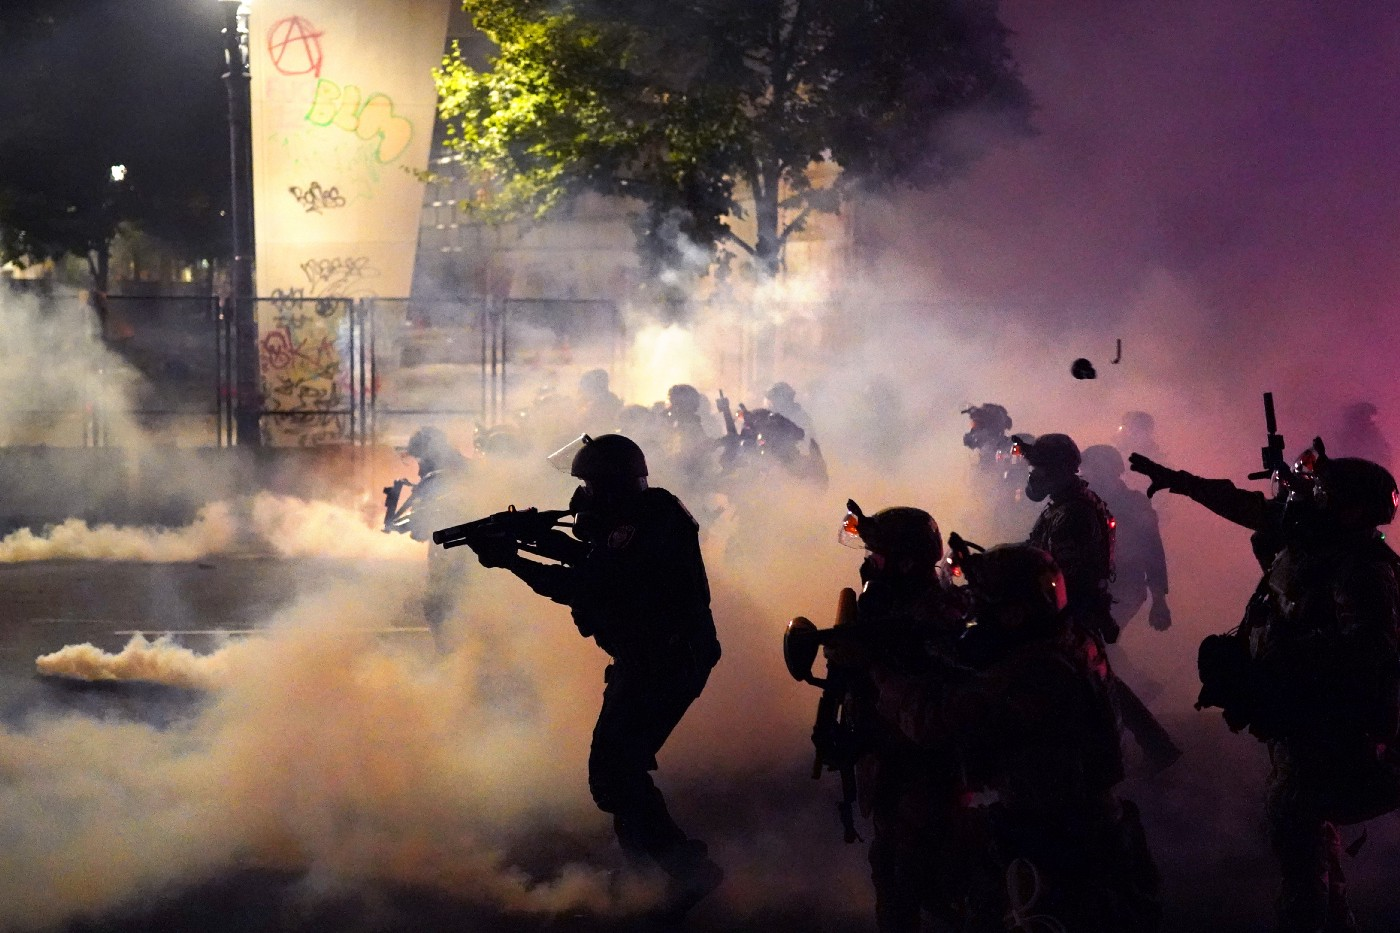 Federal officers deploy tear gas at protestors in front of the Mark O. Hatfield courthouse in Portland, Oregon.